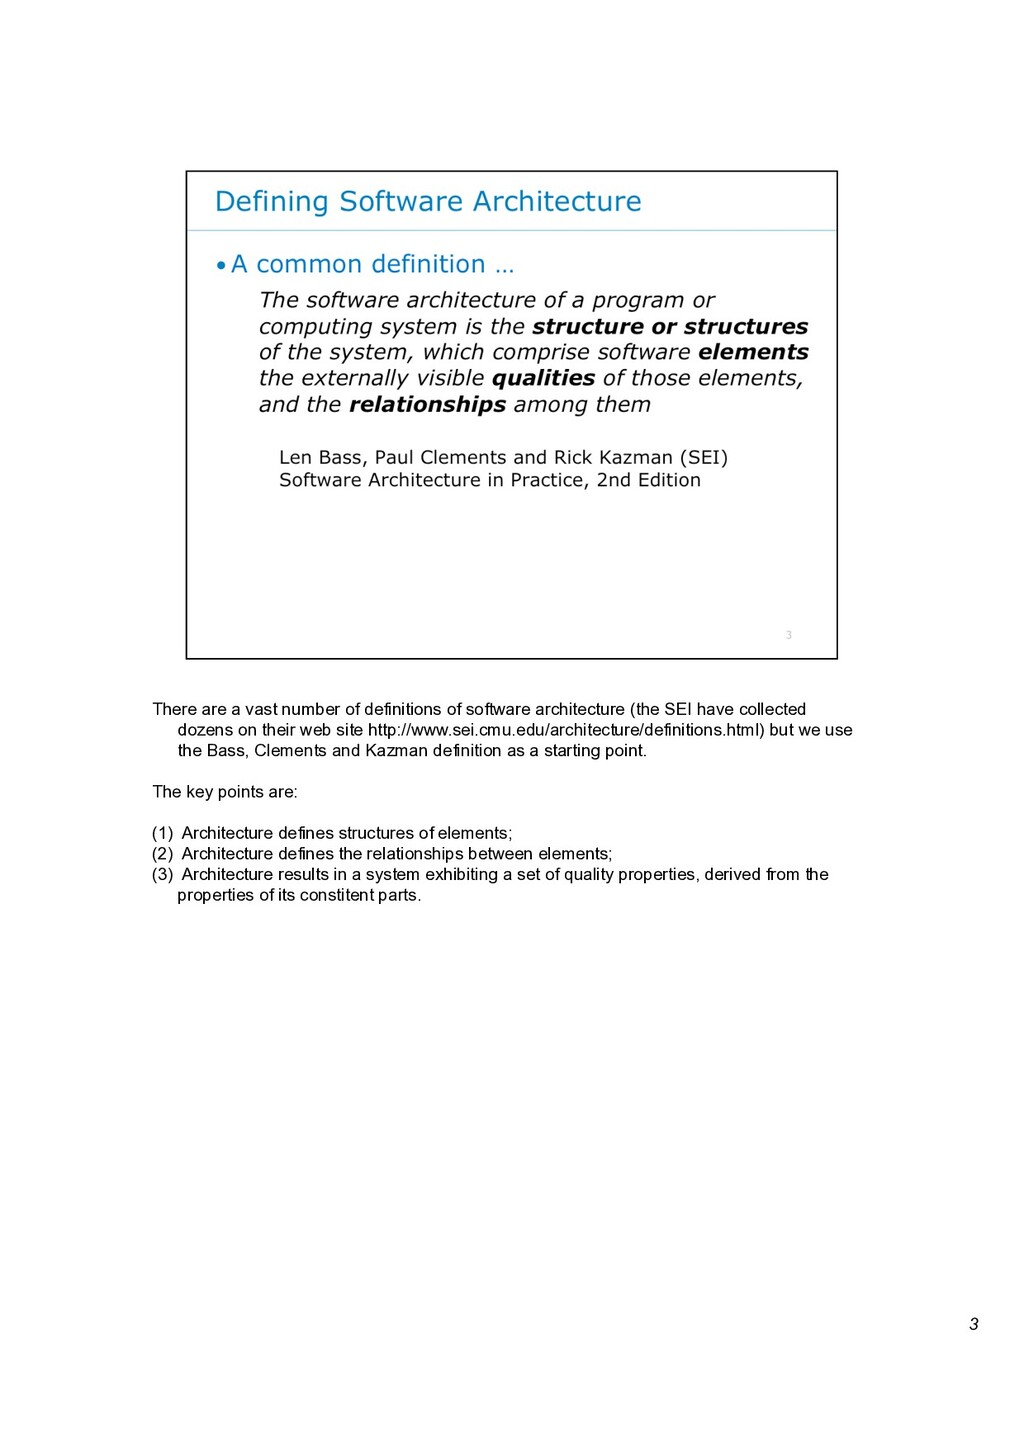 3 There are a vast number of definitions of sof...